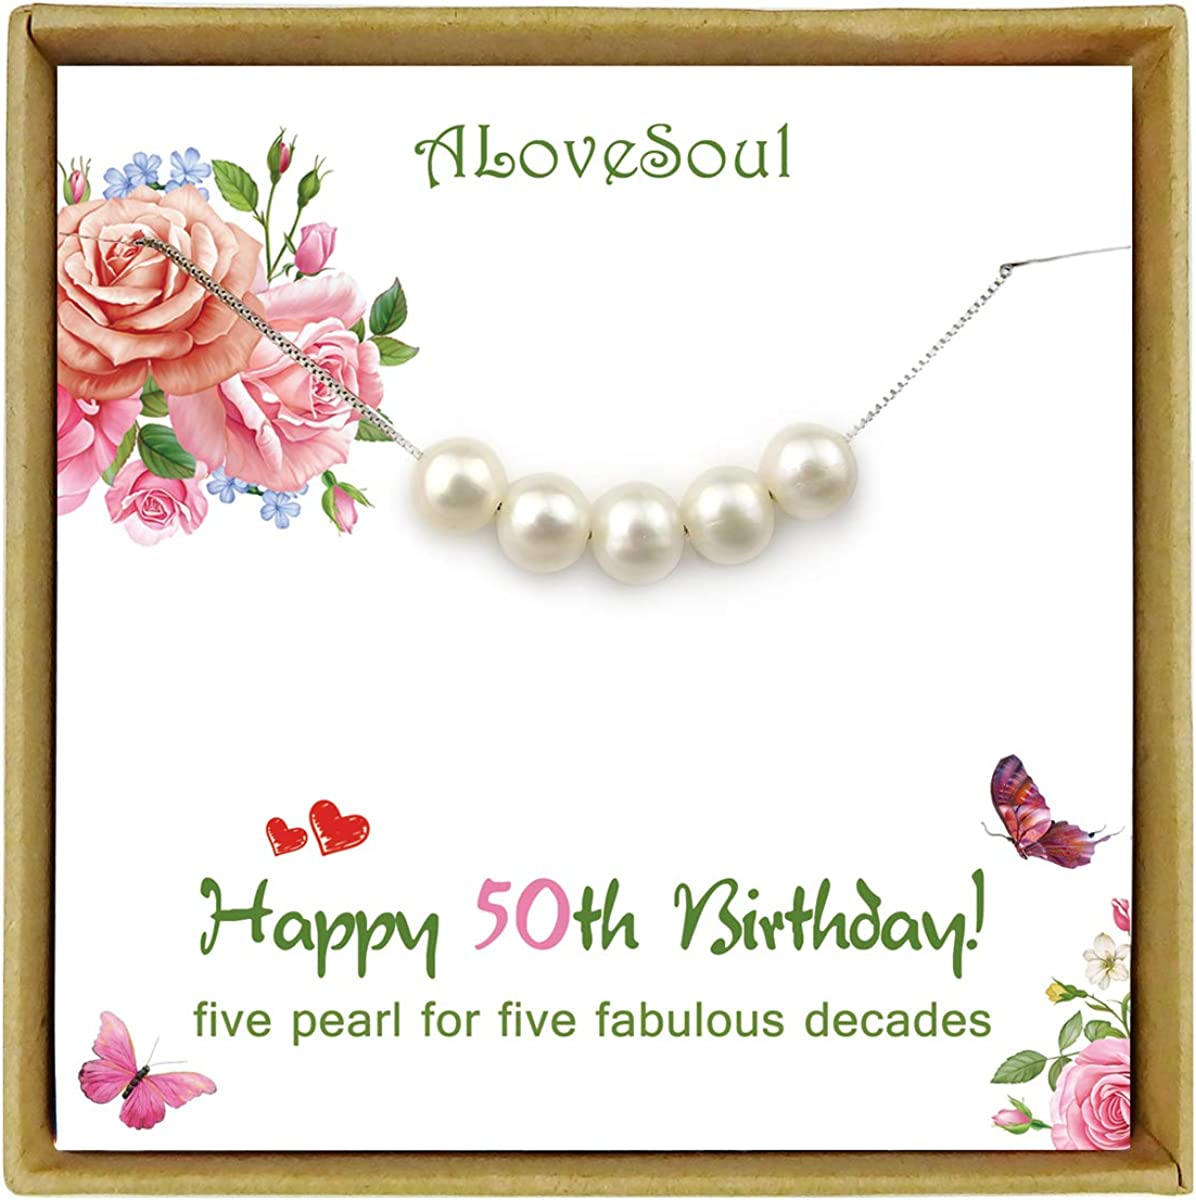 ALoveSoul 30th Birthday Gifts for Women 1990 Birthday Gifts Ideas 3 Decade Jewelry 30 Years Old 3 Pearls 925 Sterling Silver Necklace for Her